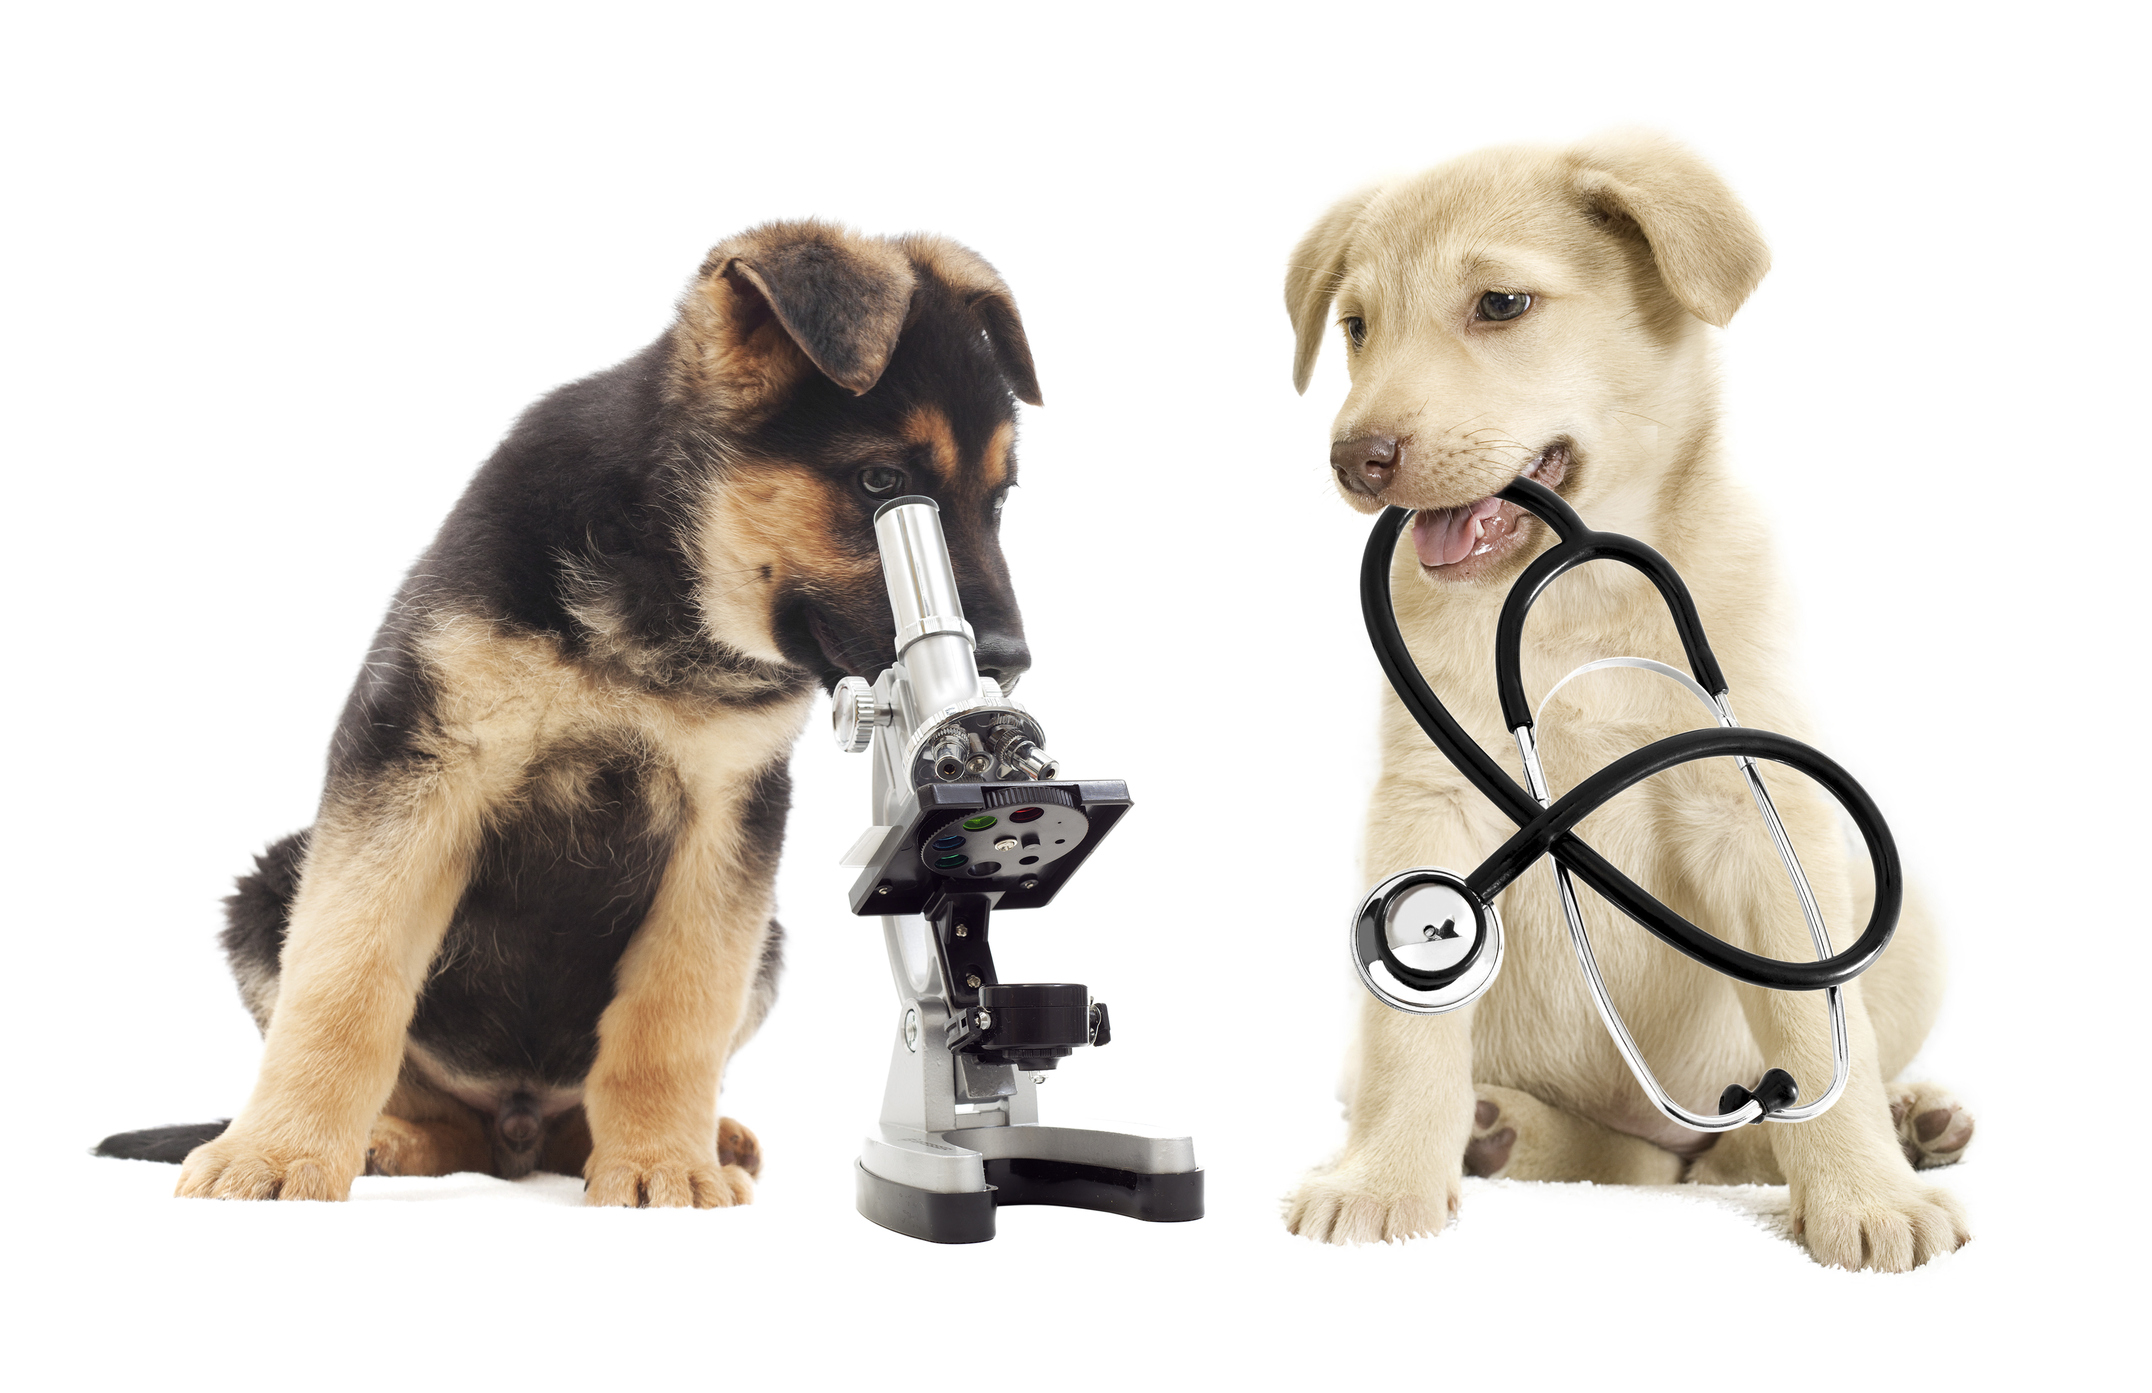 Call or Come By TodayTo Schedule your pet's veterinary appointment - Veterinary : (325) 284-3017